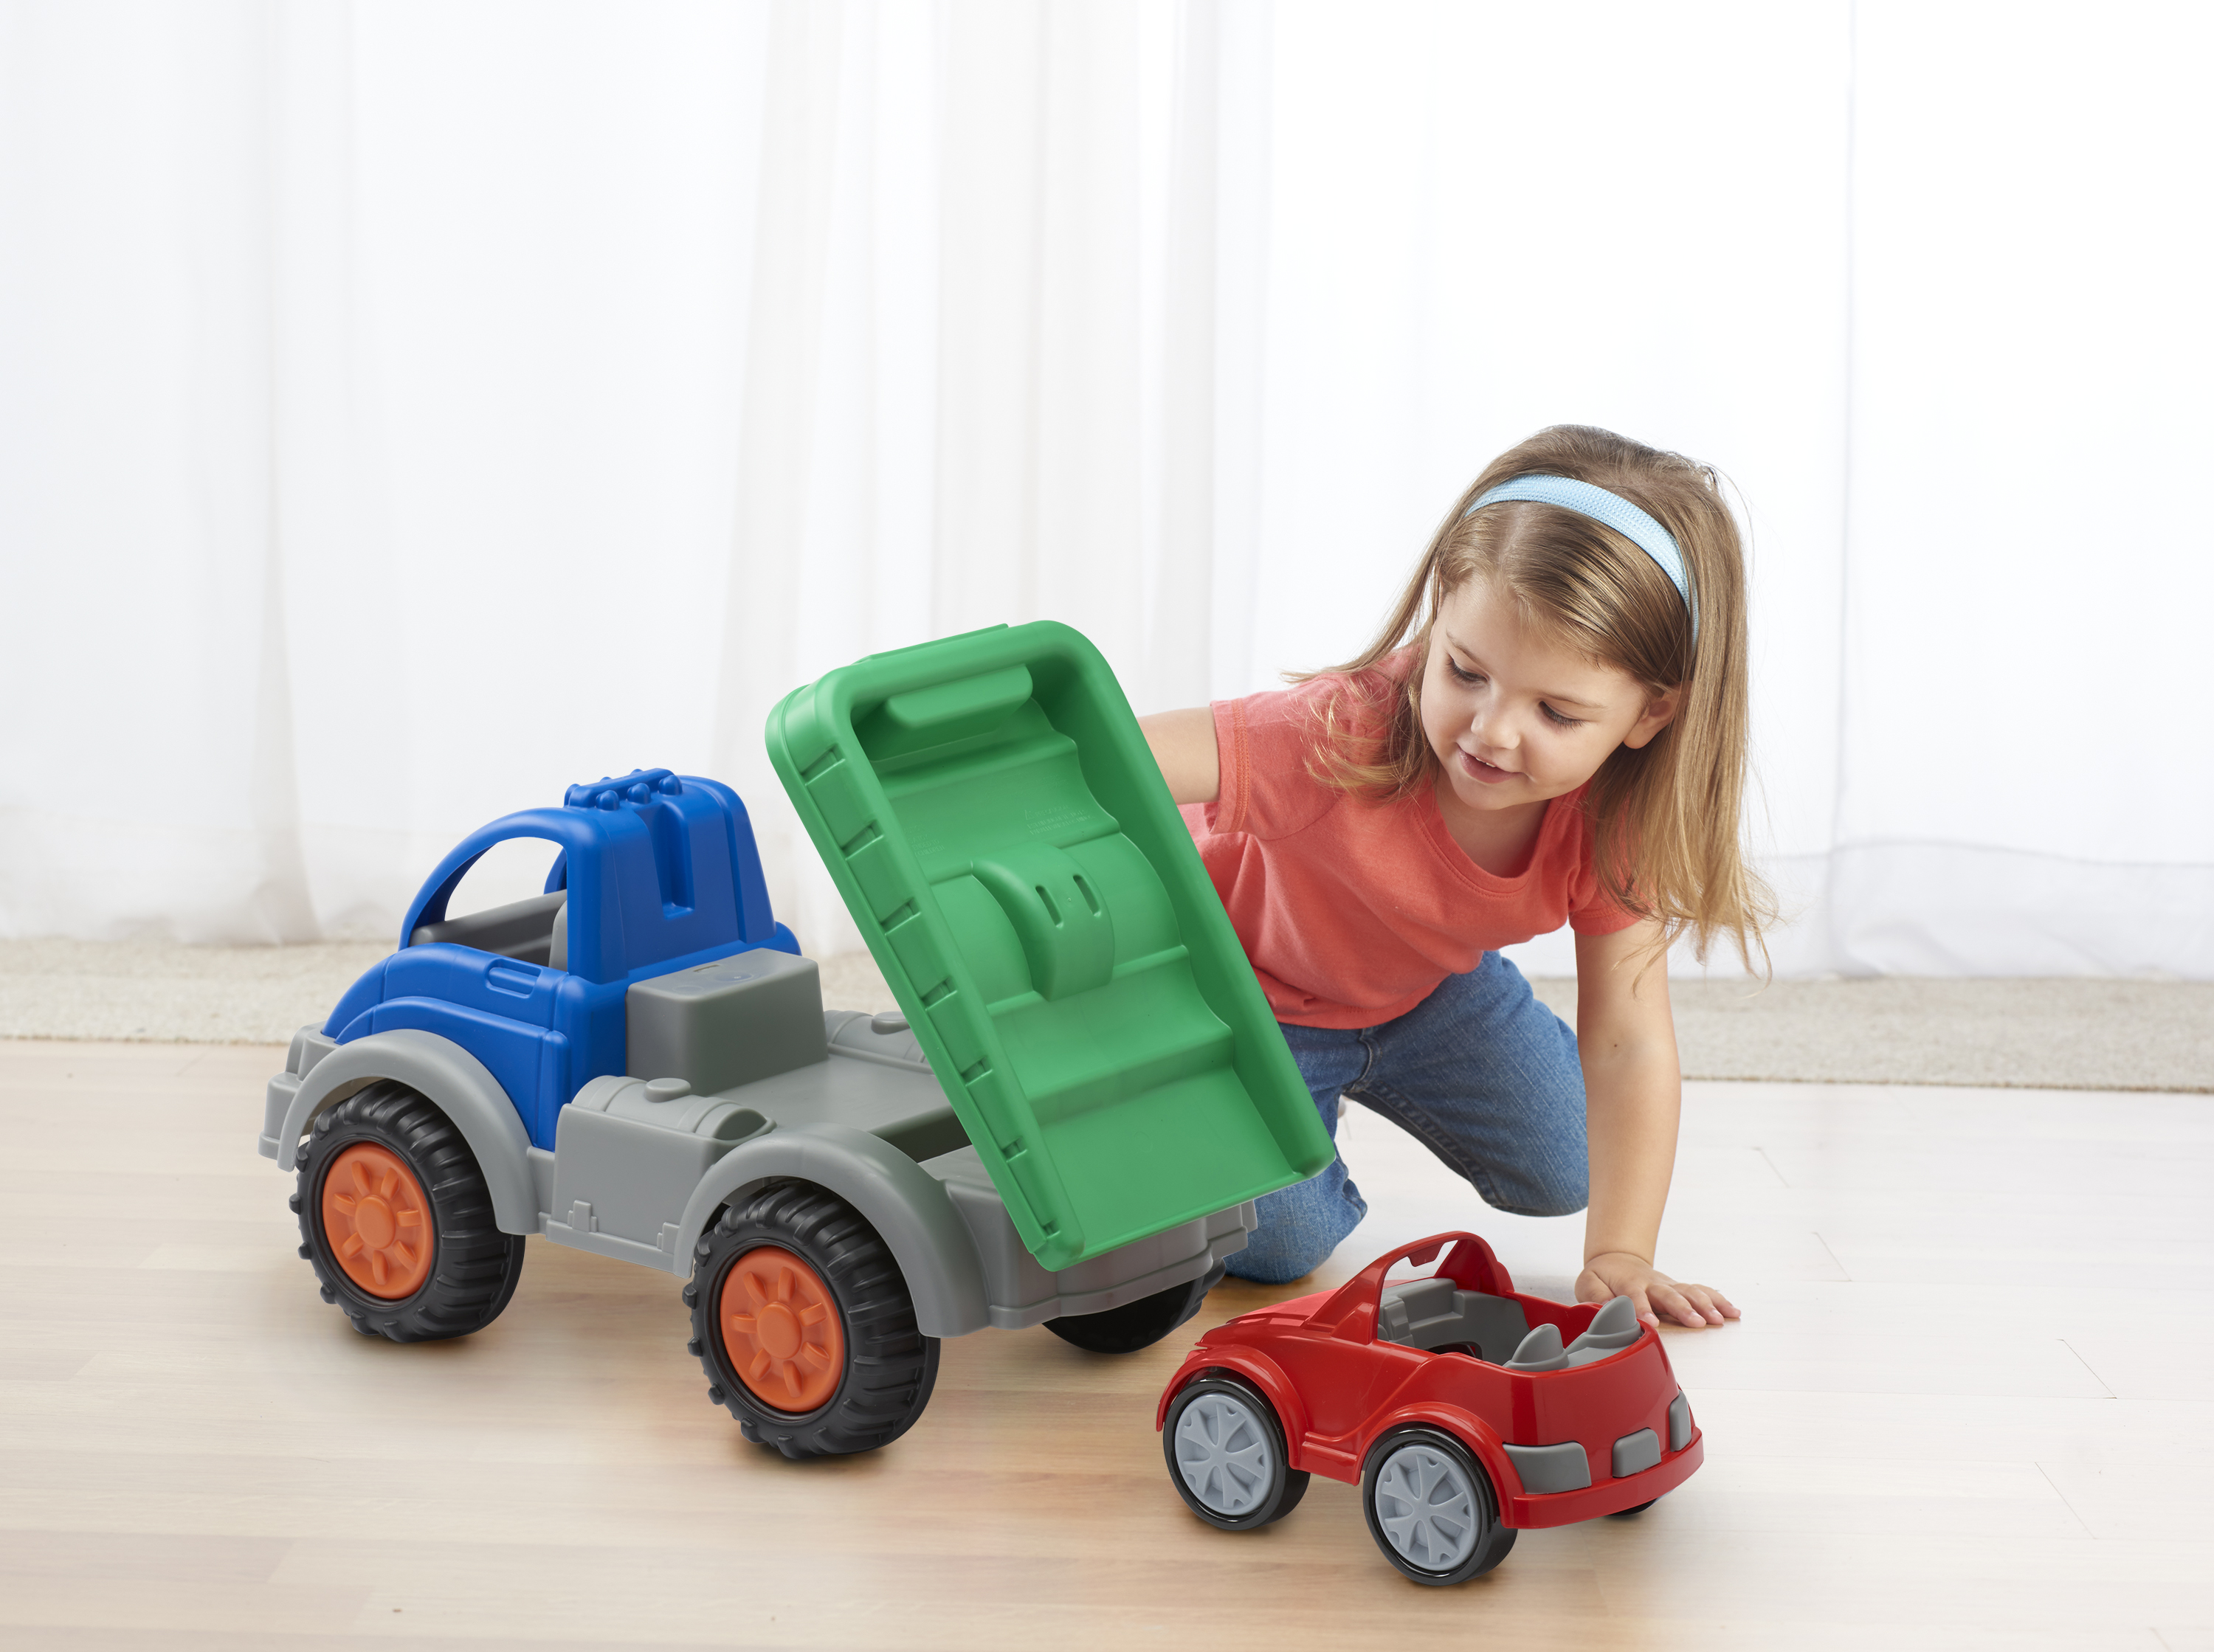 American Plastic Toys Gigantic Trucks ONLY $10 at Walmart